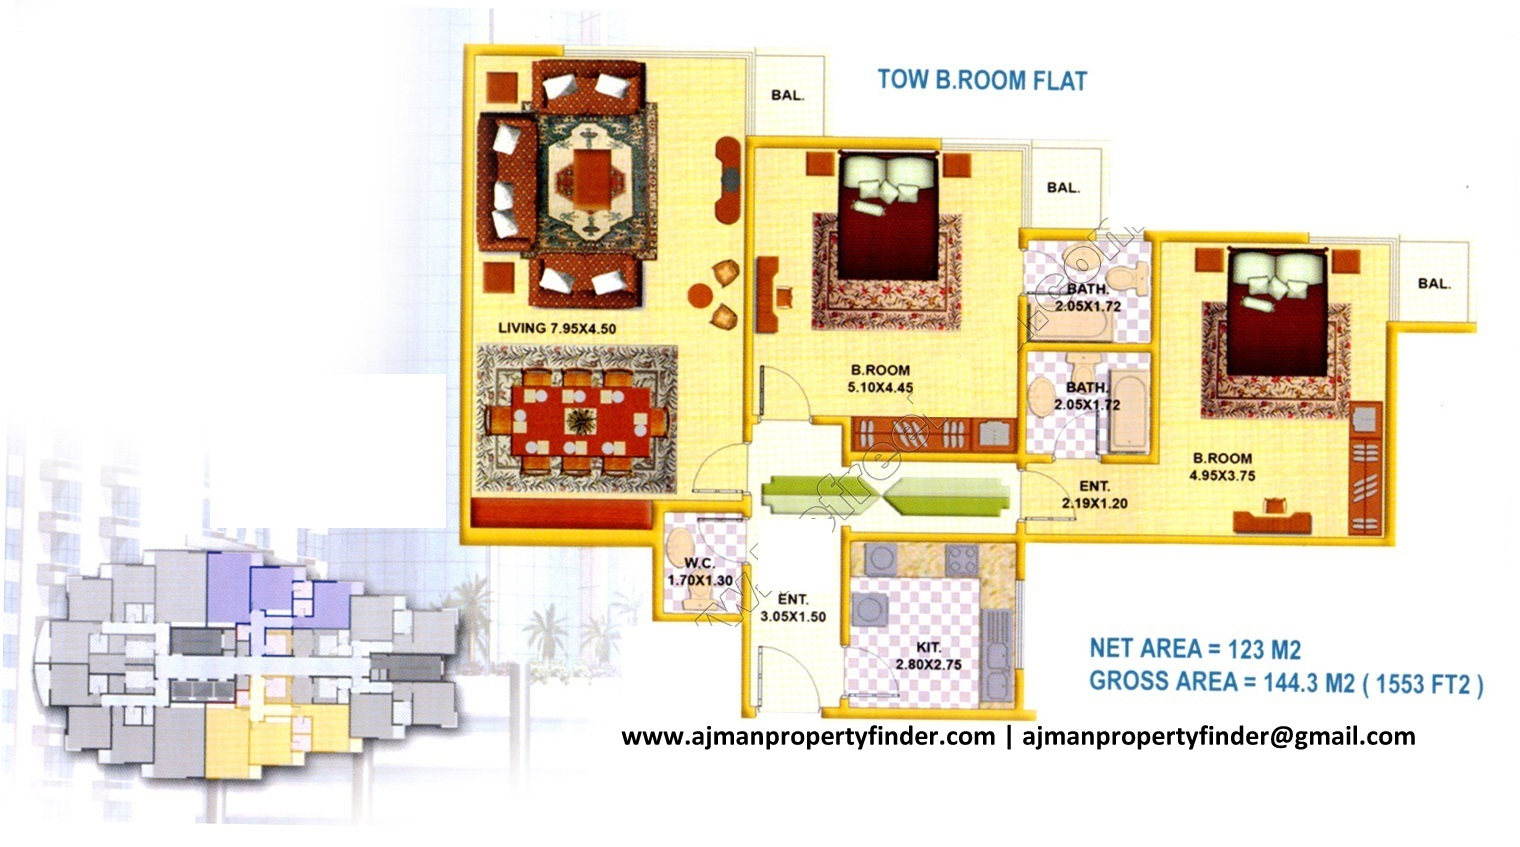 2 bhk floor plan | falcon tower | Size 1553 sqft | Ajman Property Finder